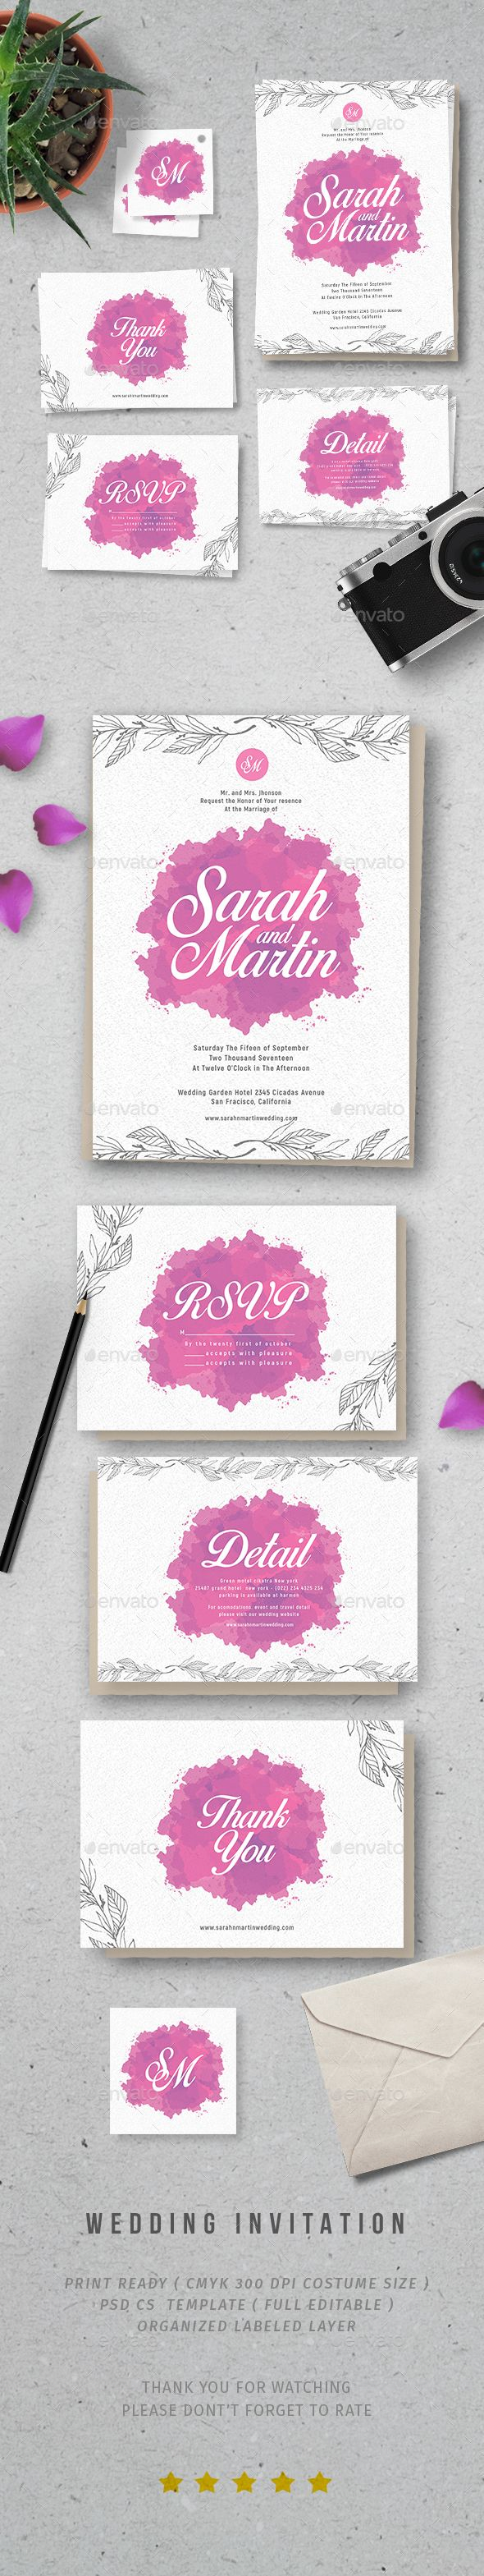 free wedding invitation psd%0A Watercolor Wedding Invitation